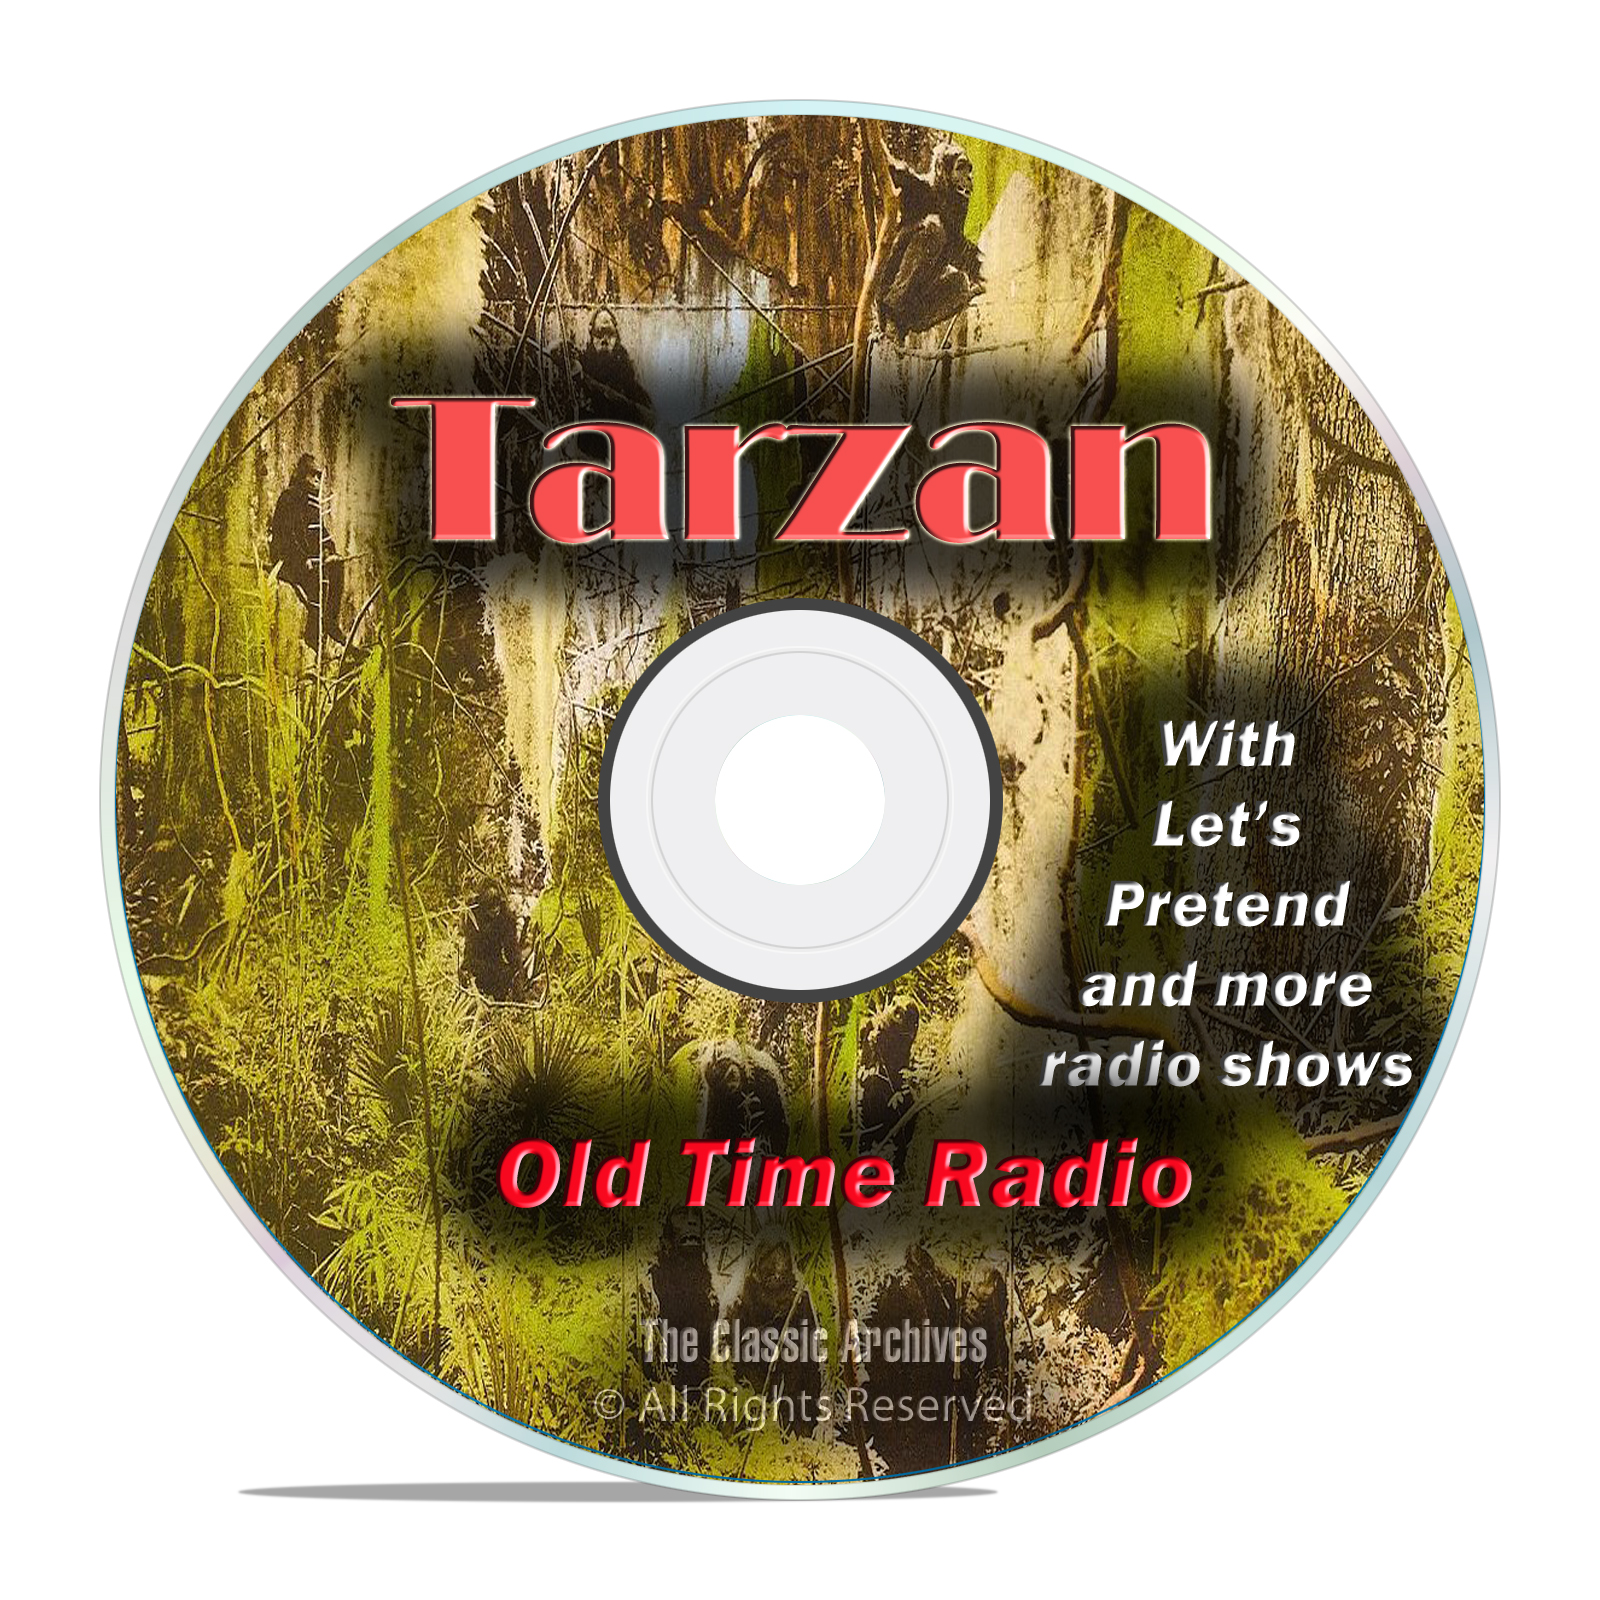 Tarzan Series, Apes, Jungle, Tohr, 1,173 Old Time Radio Action Episodes DVD